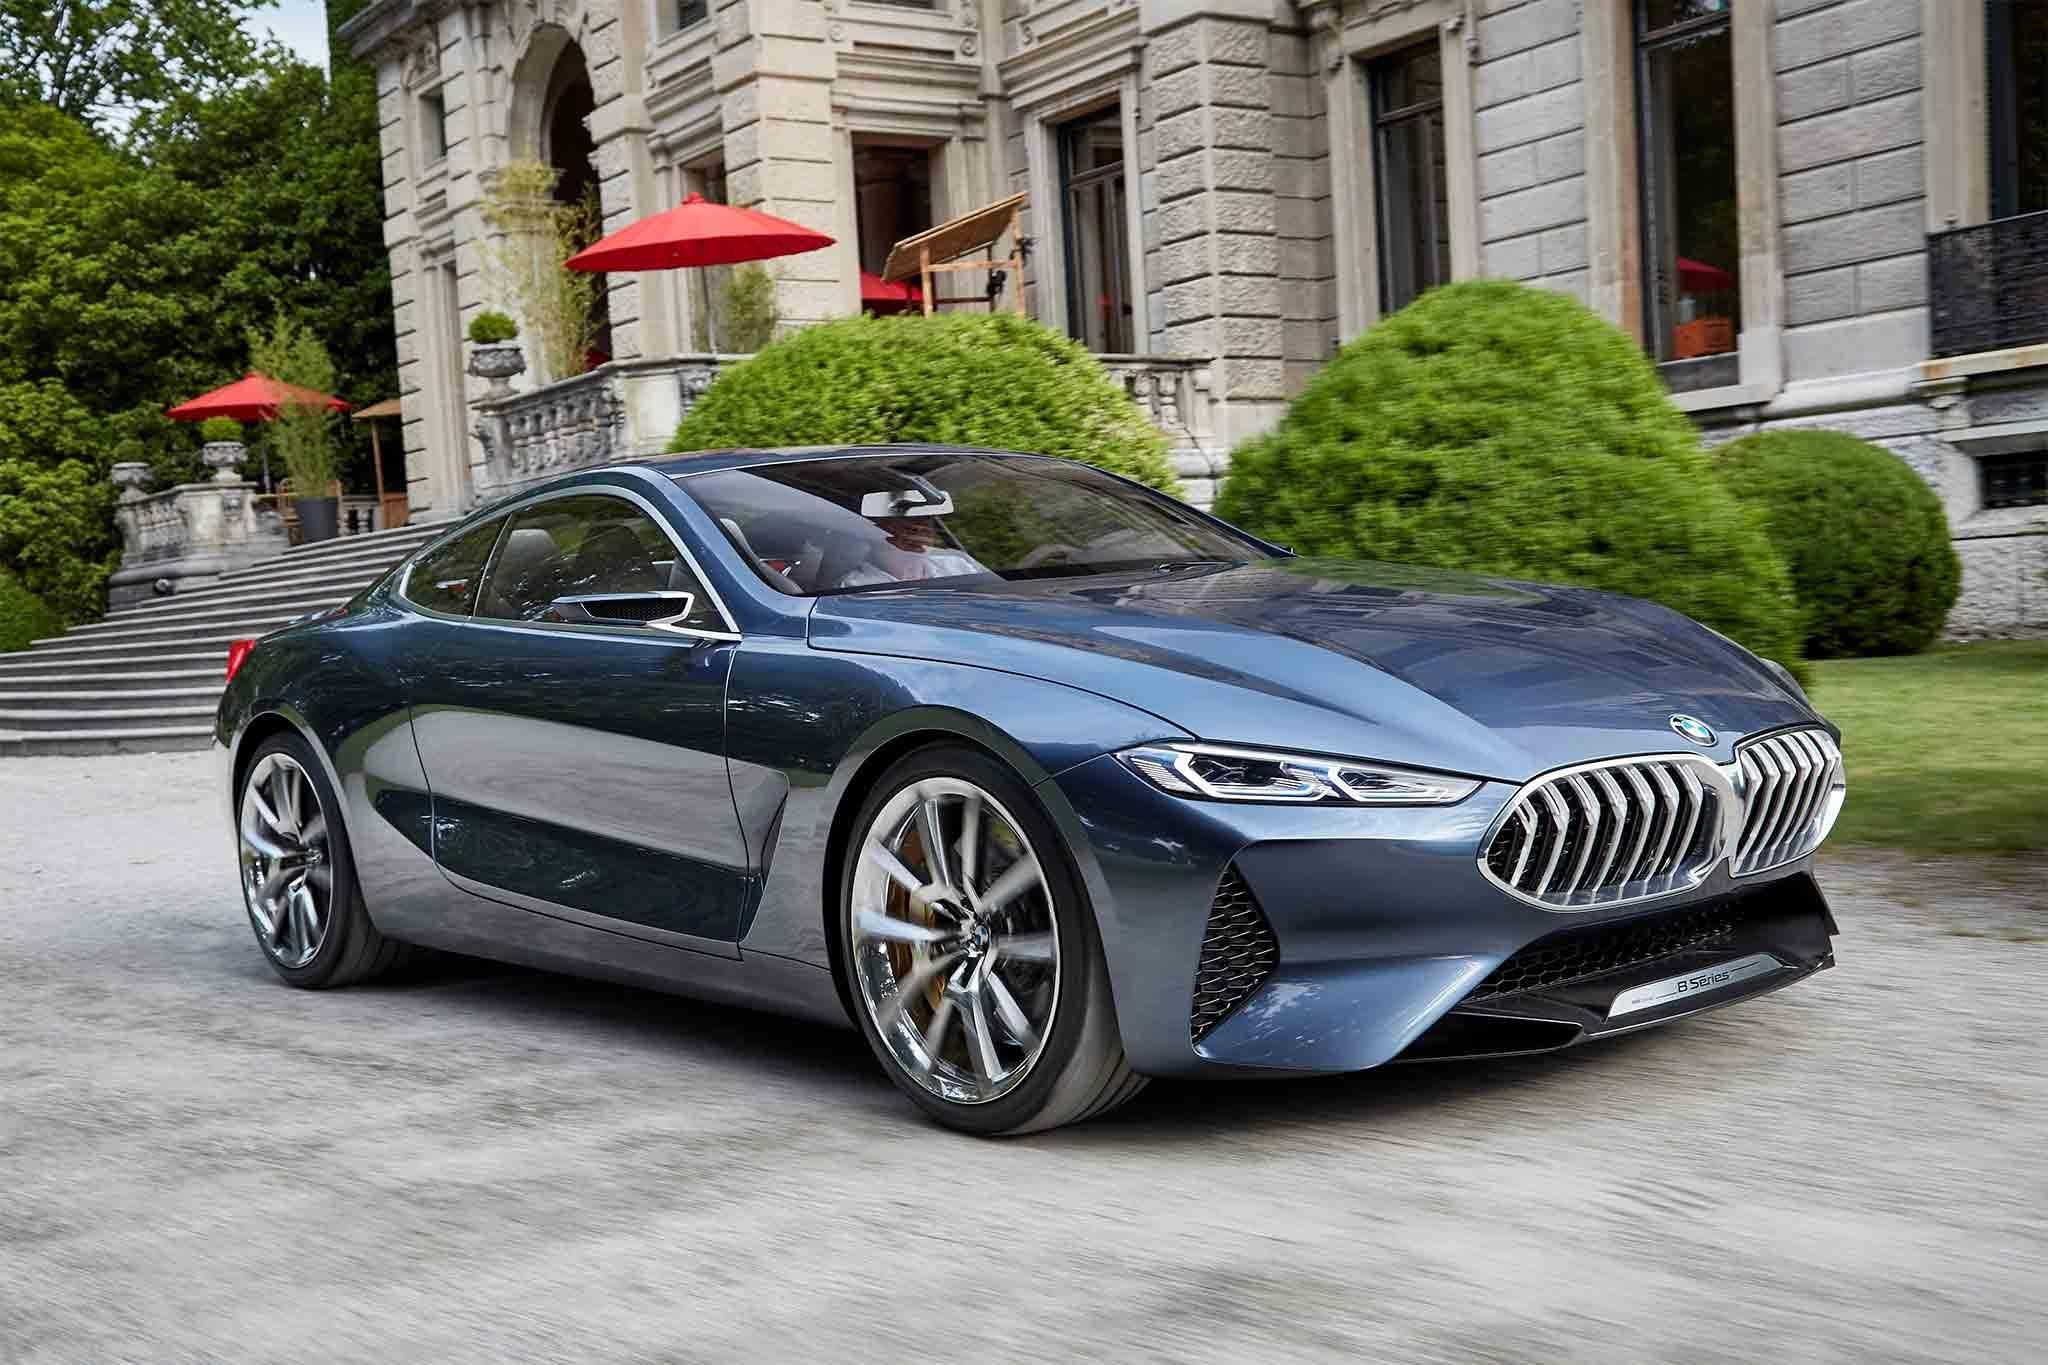 The 2019 Bmw 8 Series Coupe: Is It Ever Enough For Bmw? Release Date